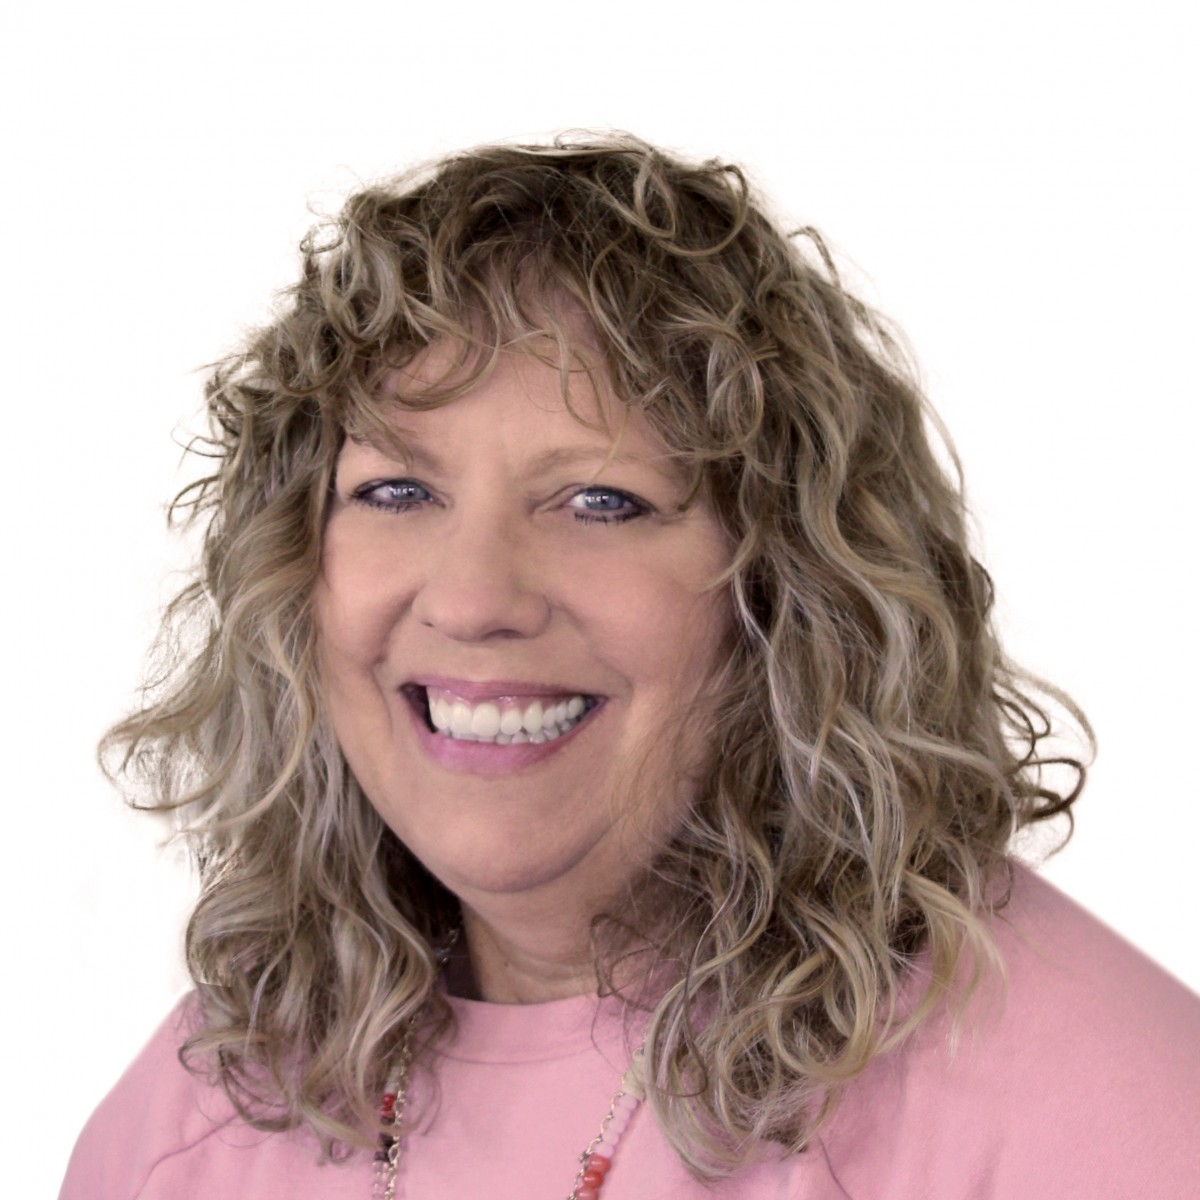 Kathy Becker Priority Marketing Public Relations Manager